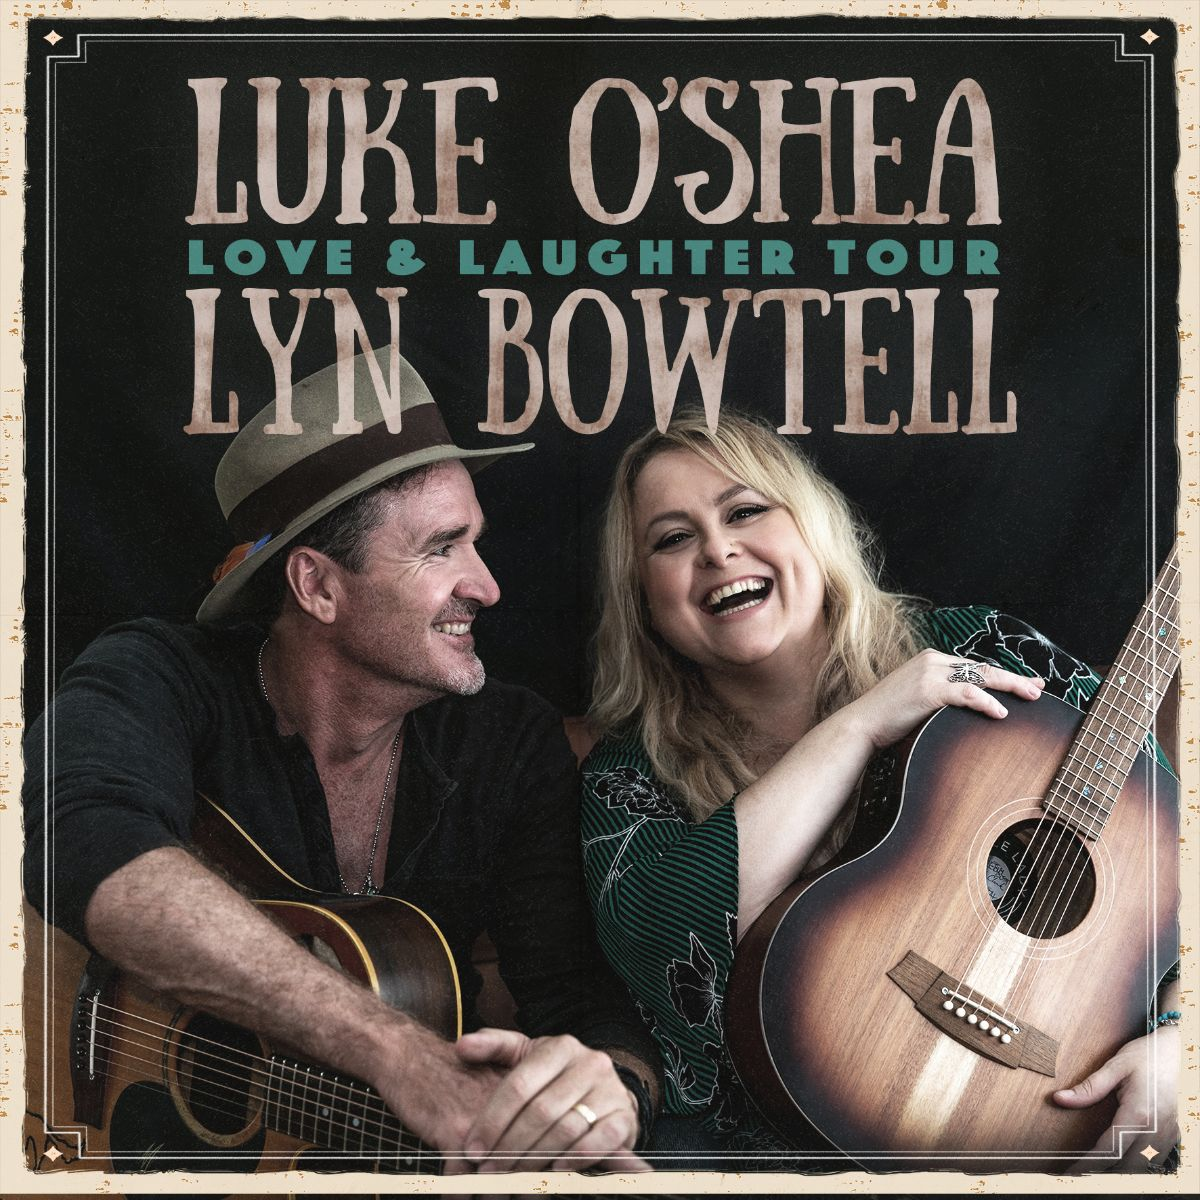 Luke O'Shea and Lyn Bowtell